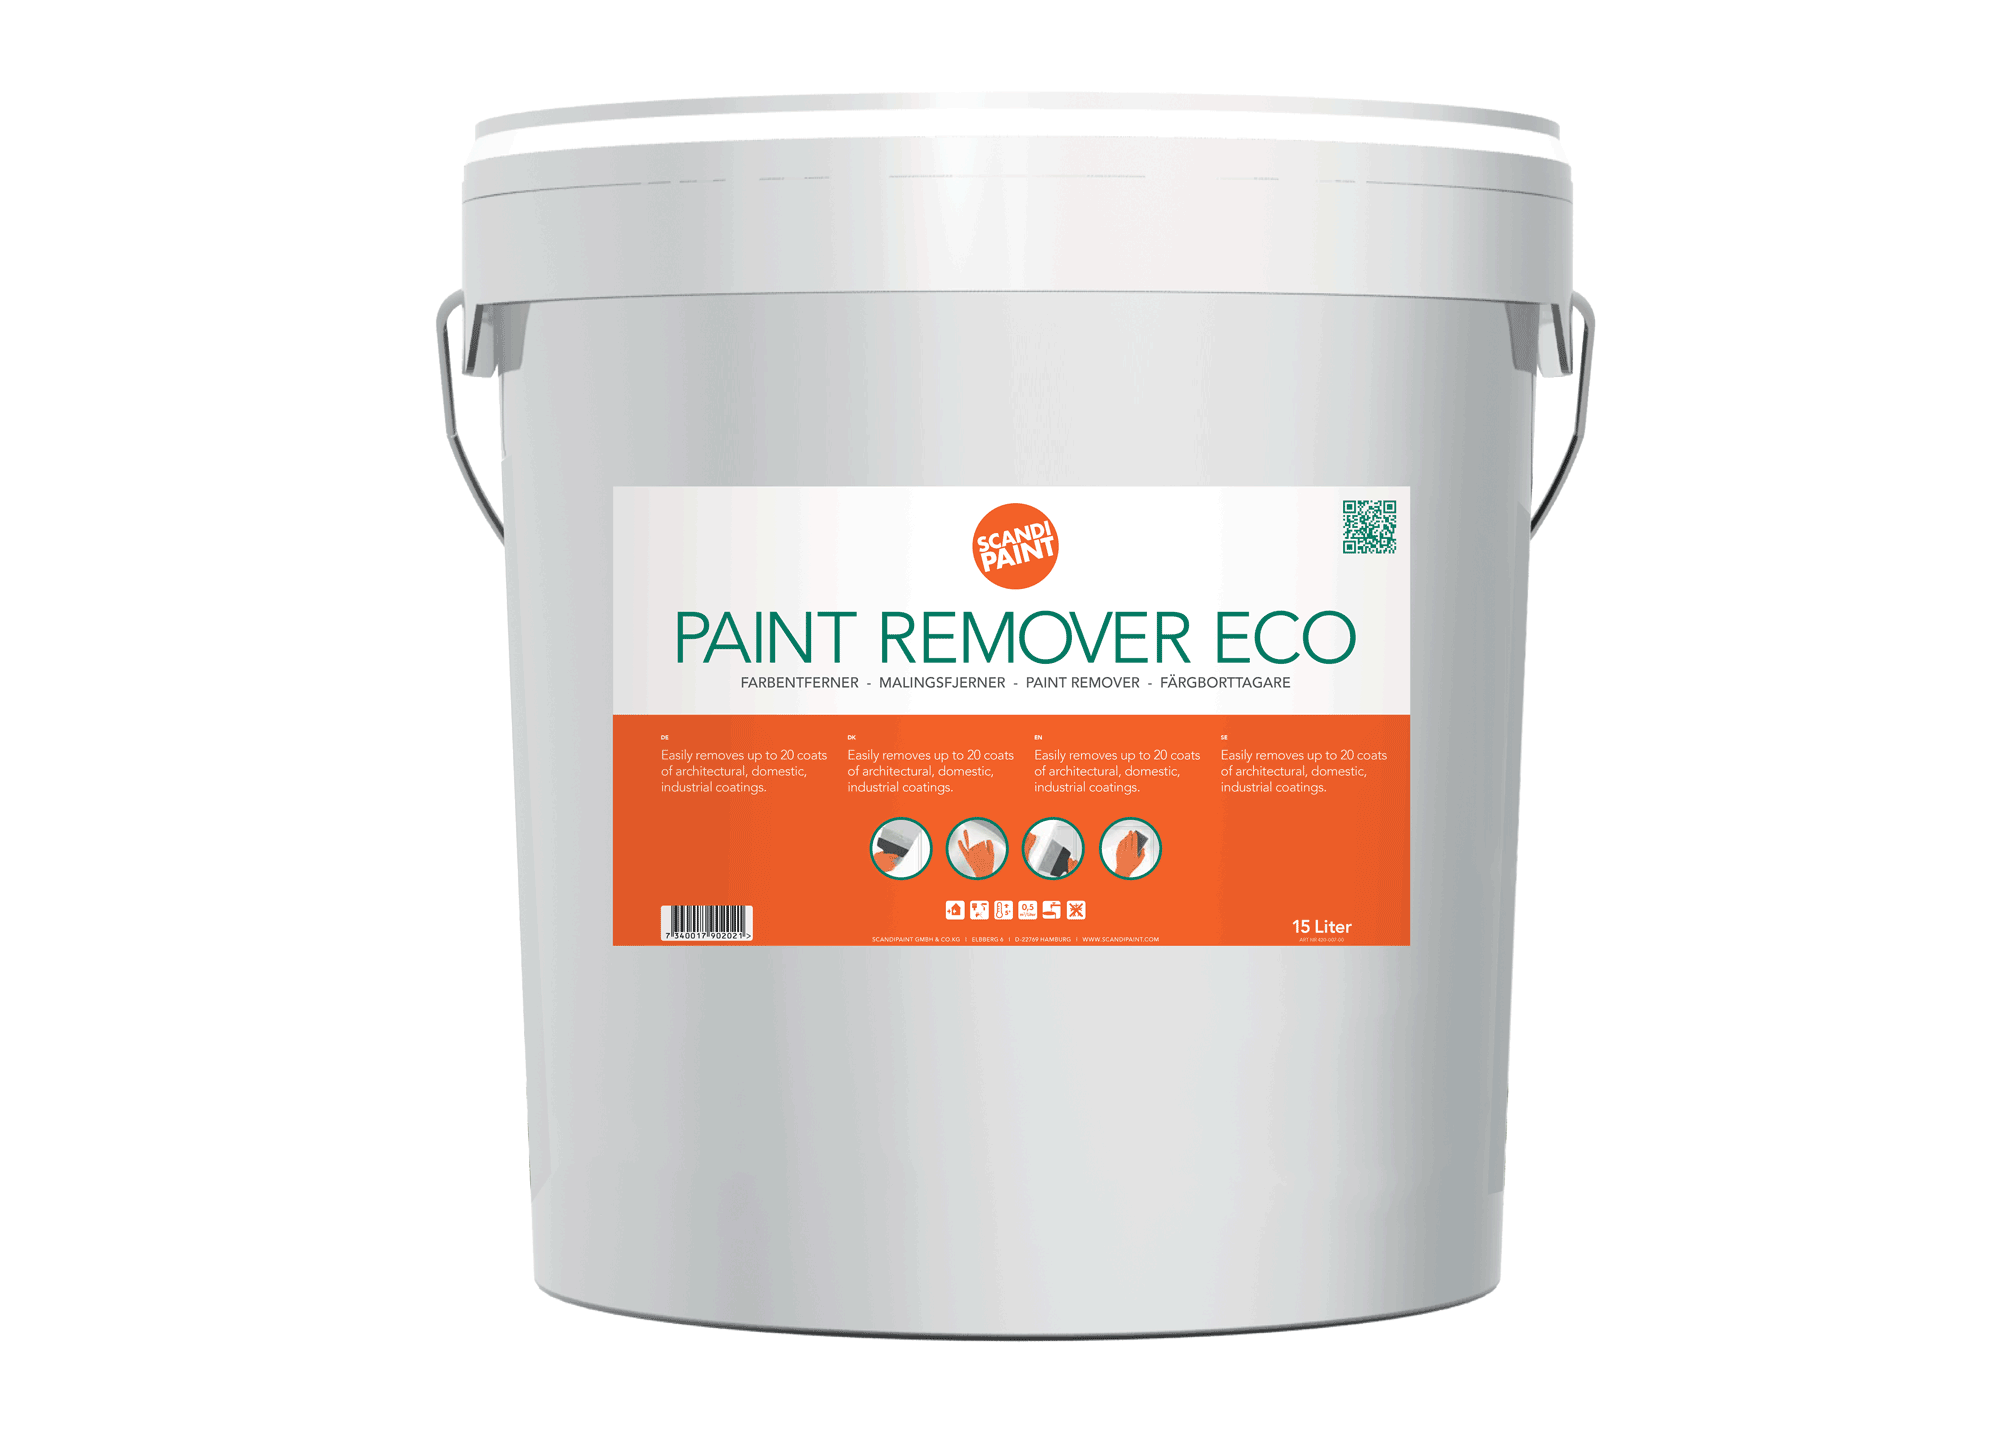 SP-Paint-Remover-ECO.png